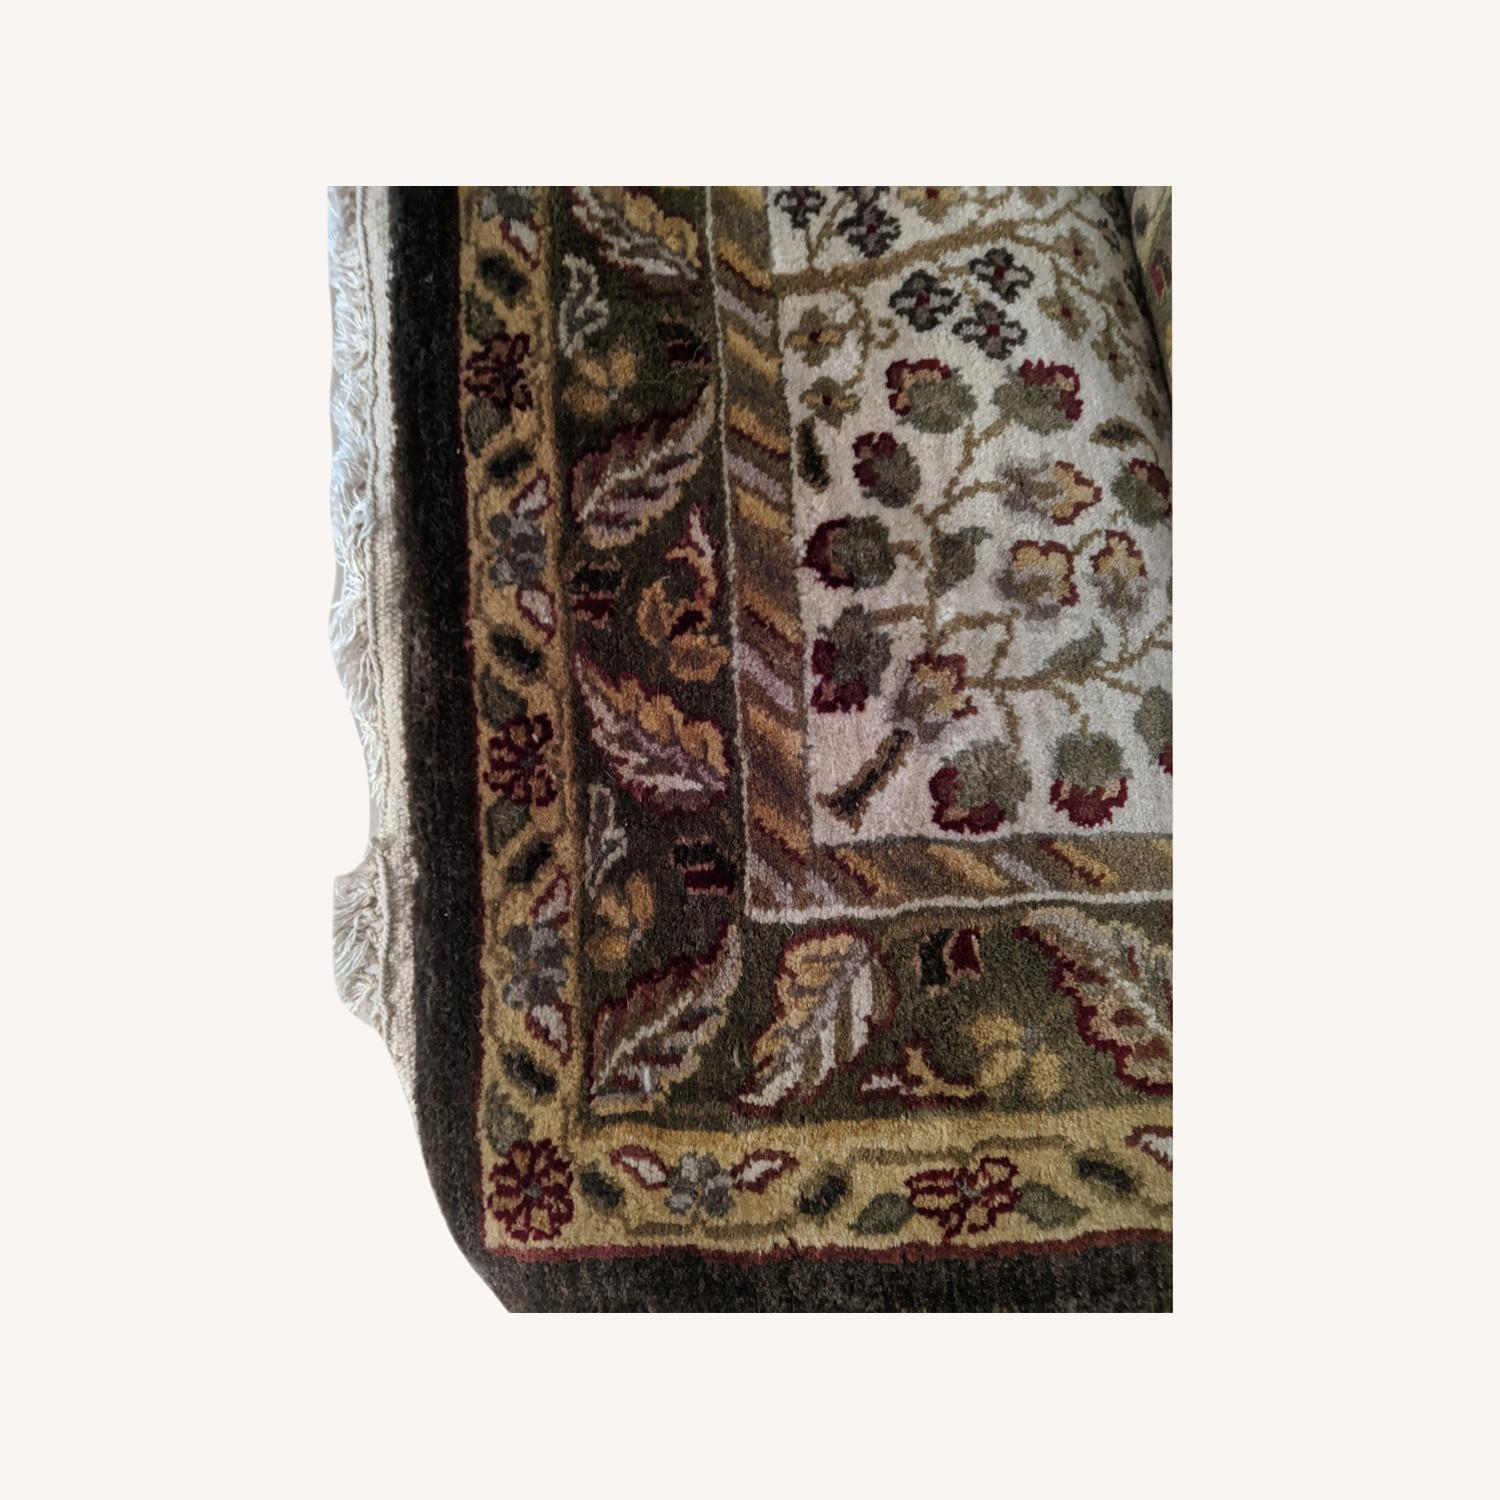 Hande Mug Rug from India with Green Patterns